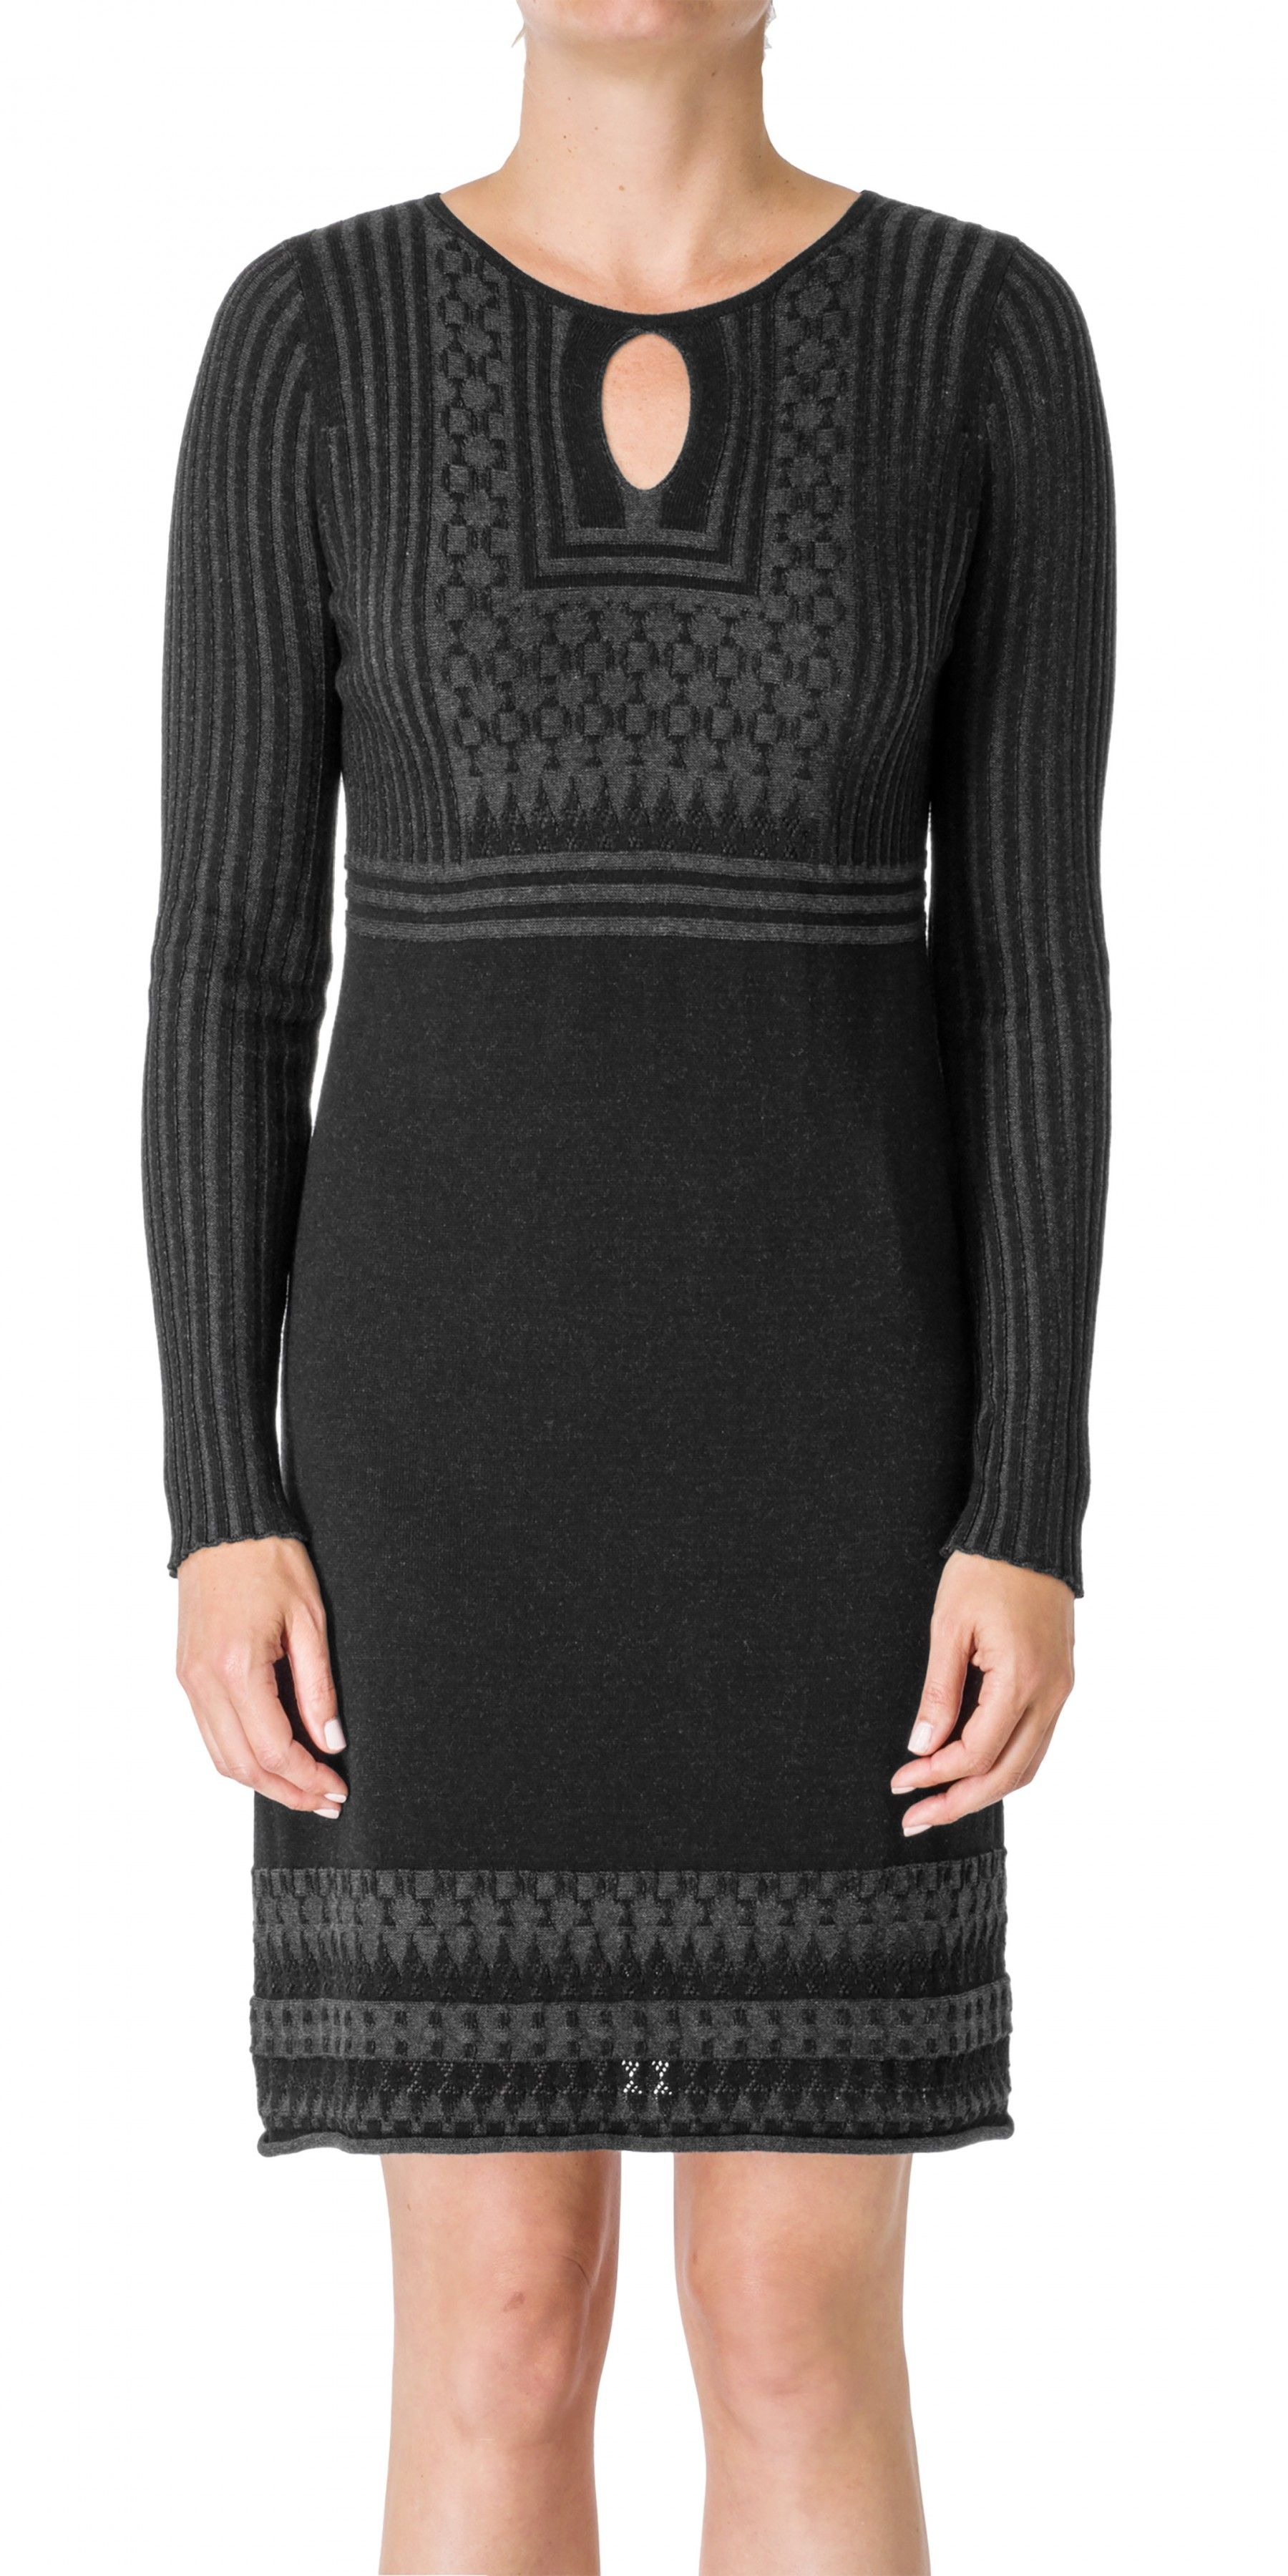 ea3dbd5df2 Long Sleeved Knitted Sweater Dress